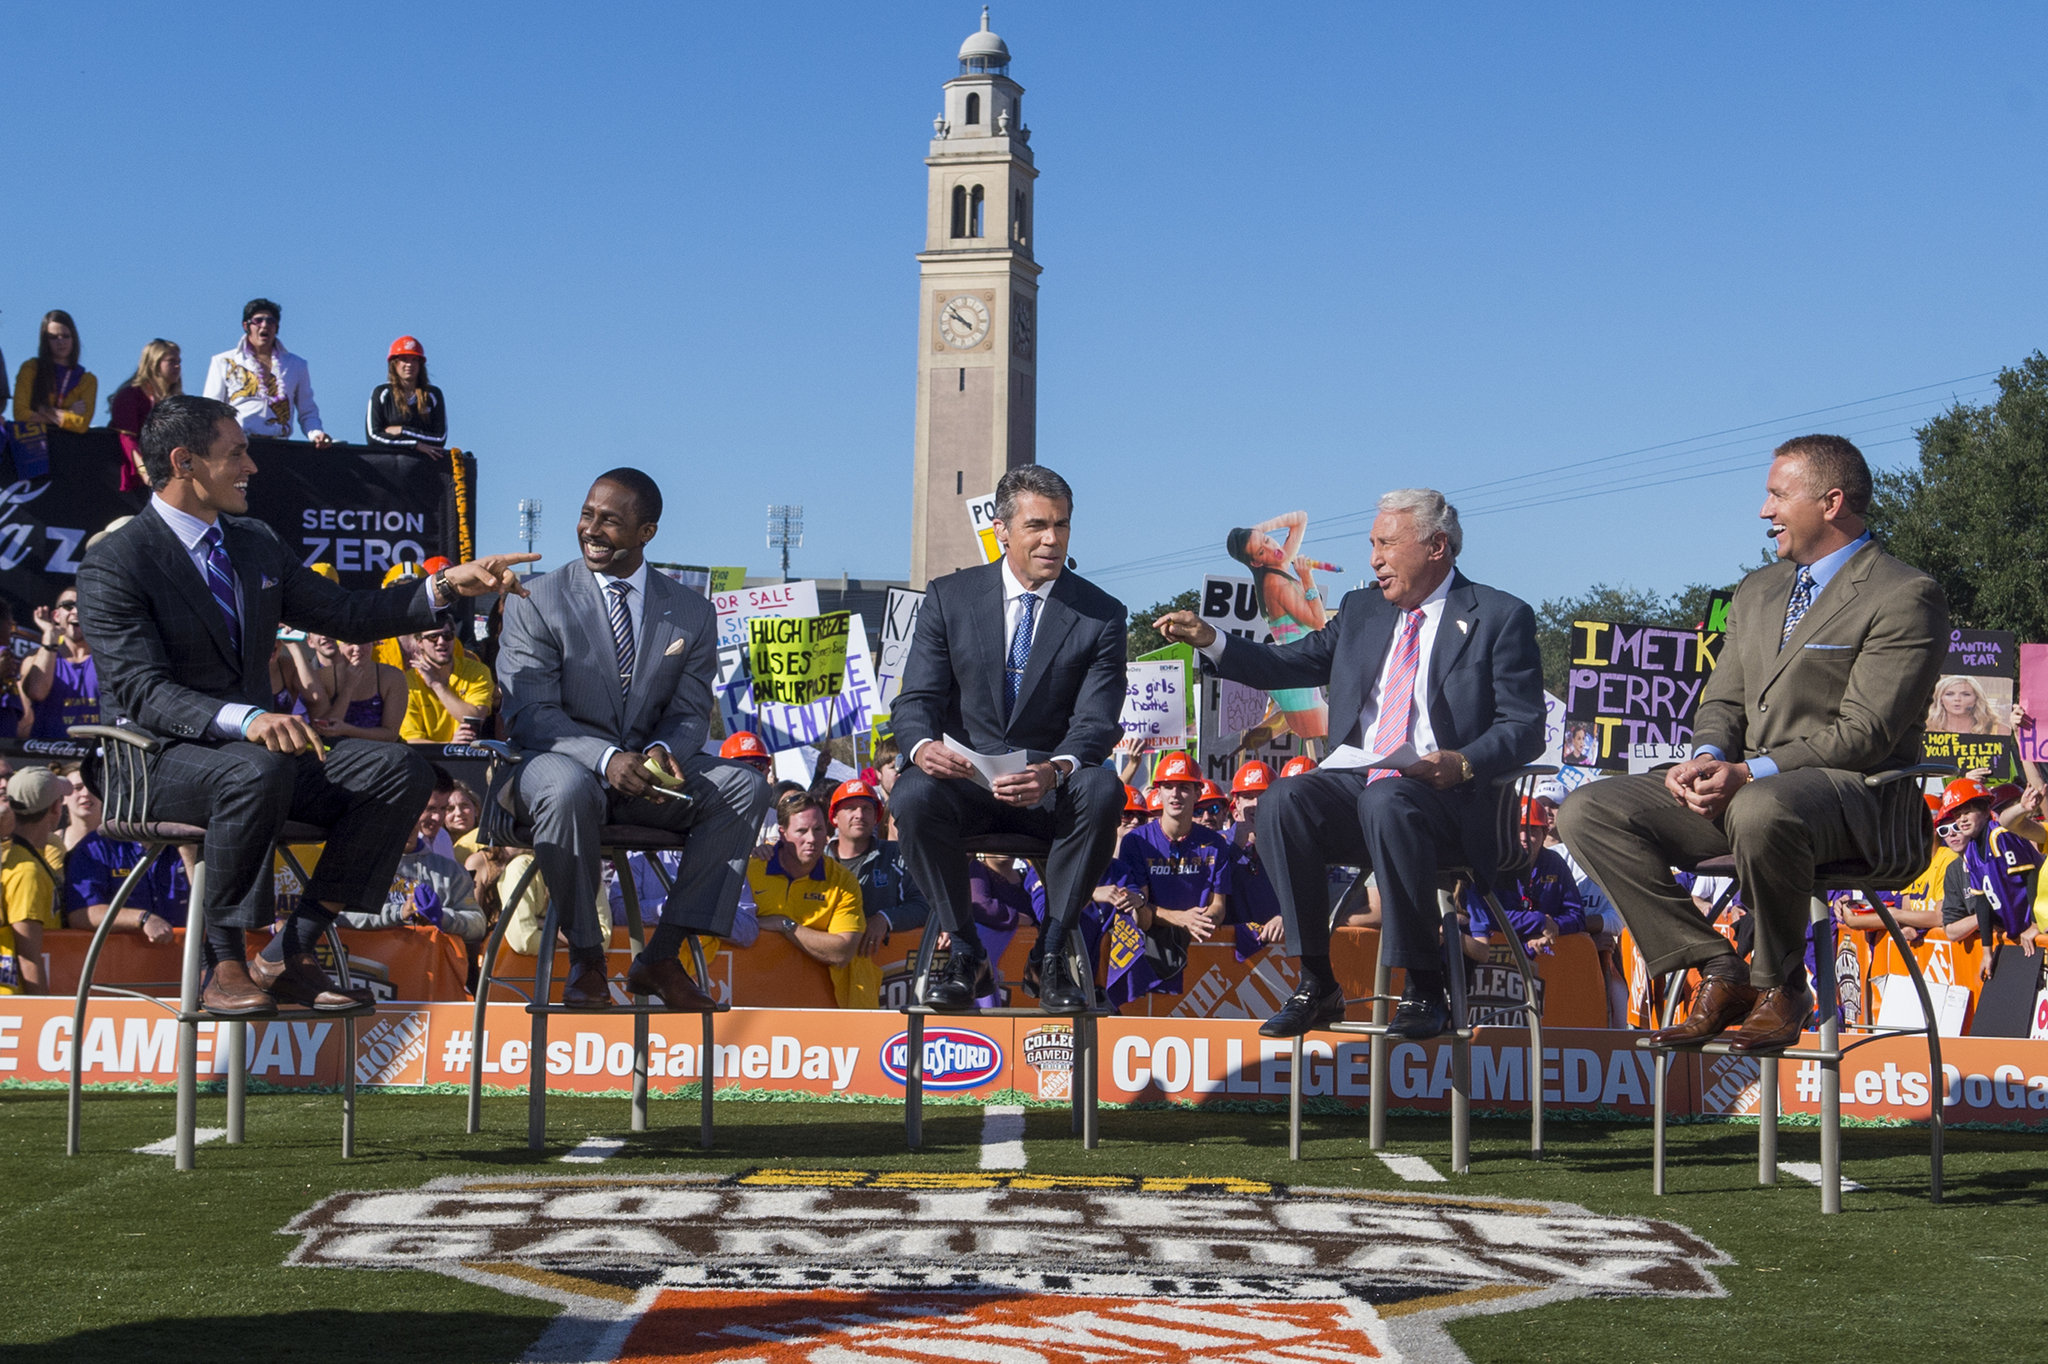 College GameDay headed to Baton Rouge